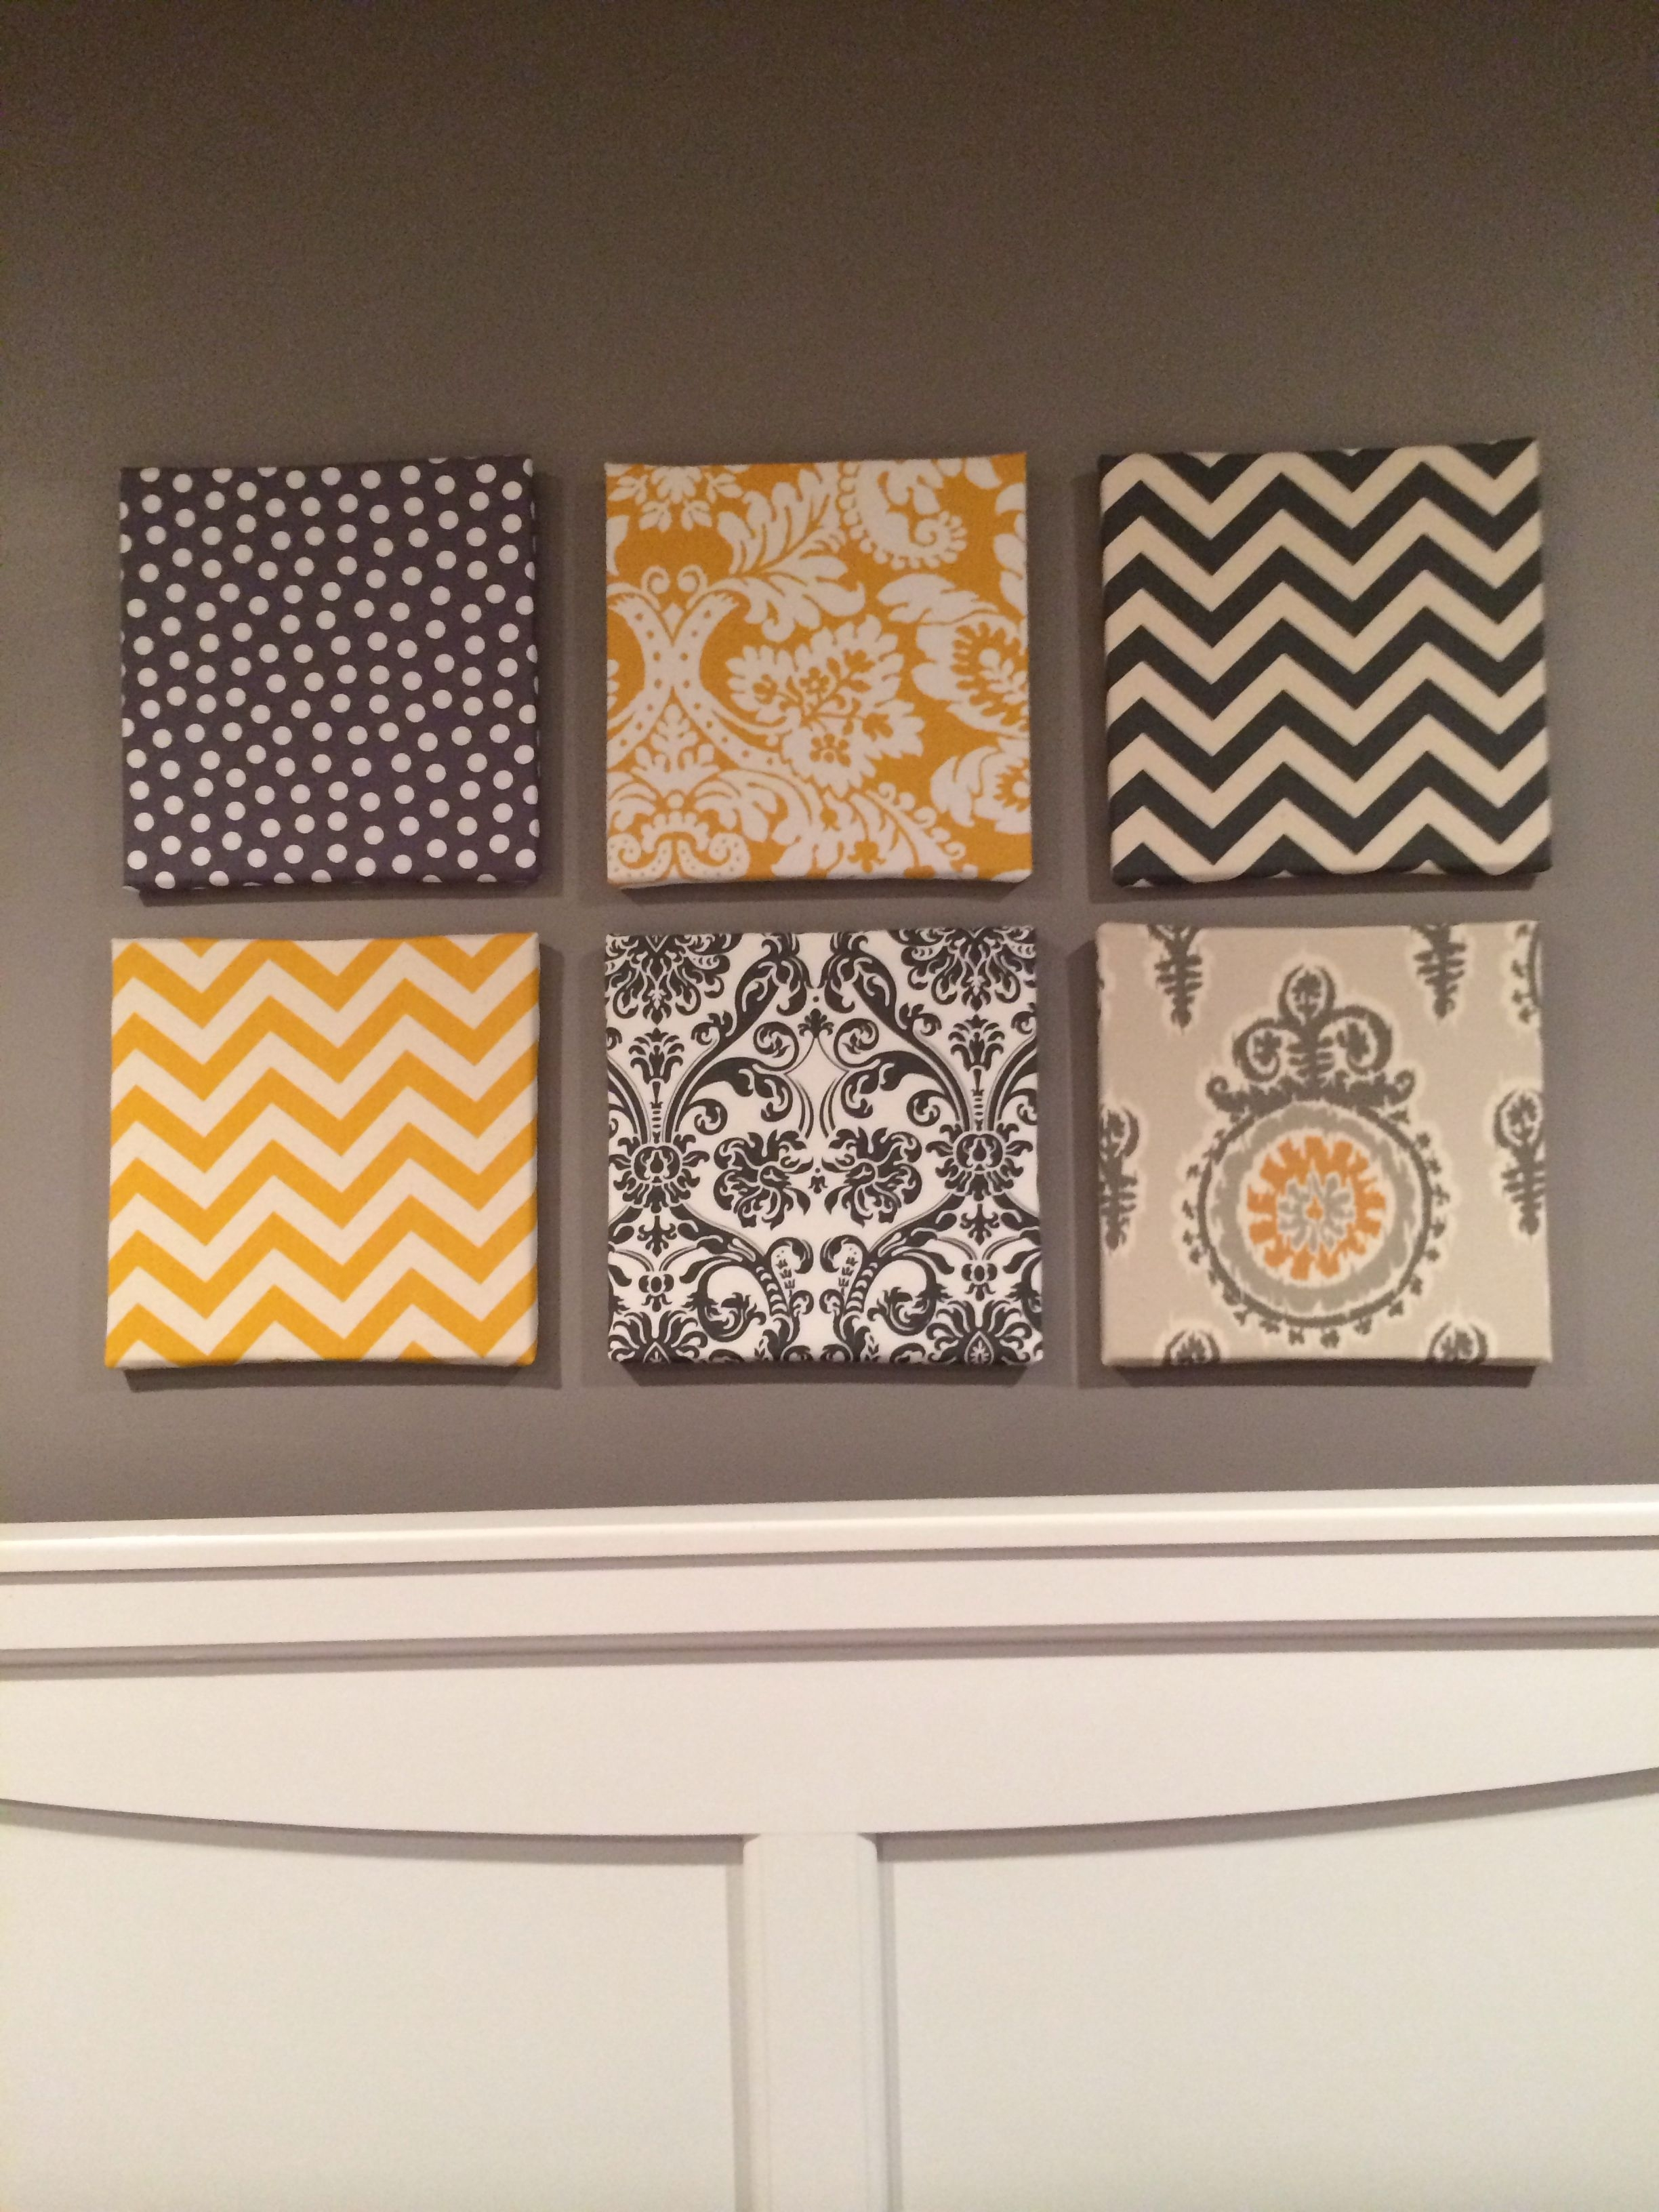 My Fabric Over Canvas Wall Art For My Gray And Yellow Themed Room With Regard To 2017 Fabric Wall Art Canvas (View 8 of 15)